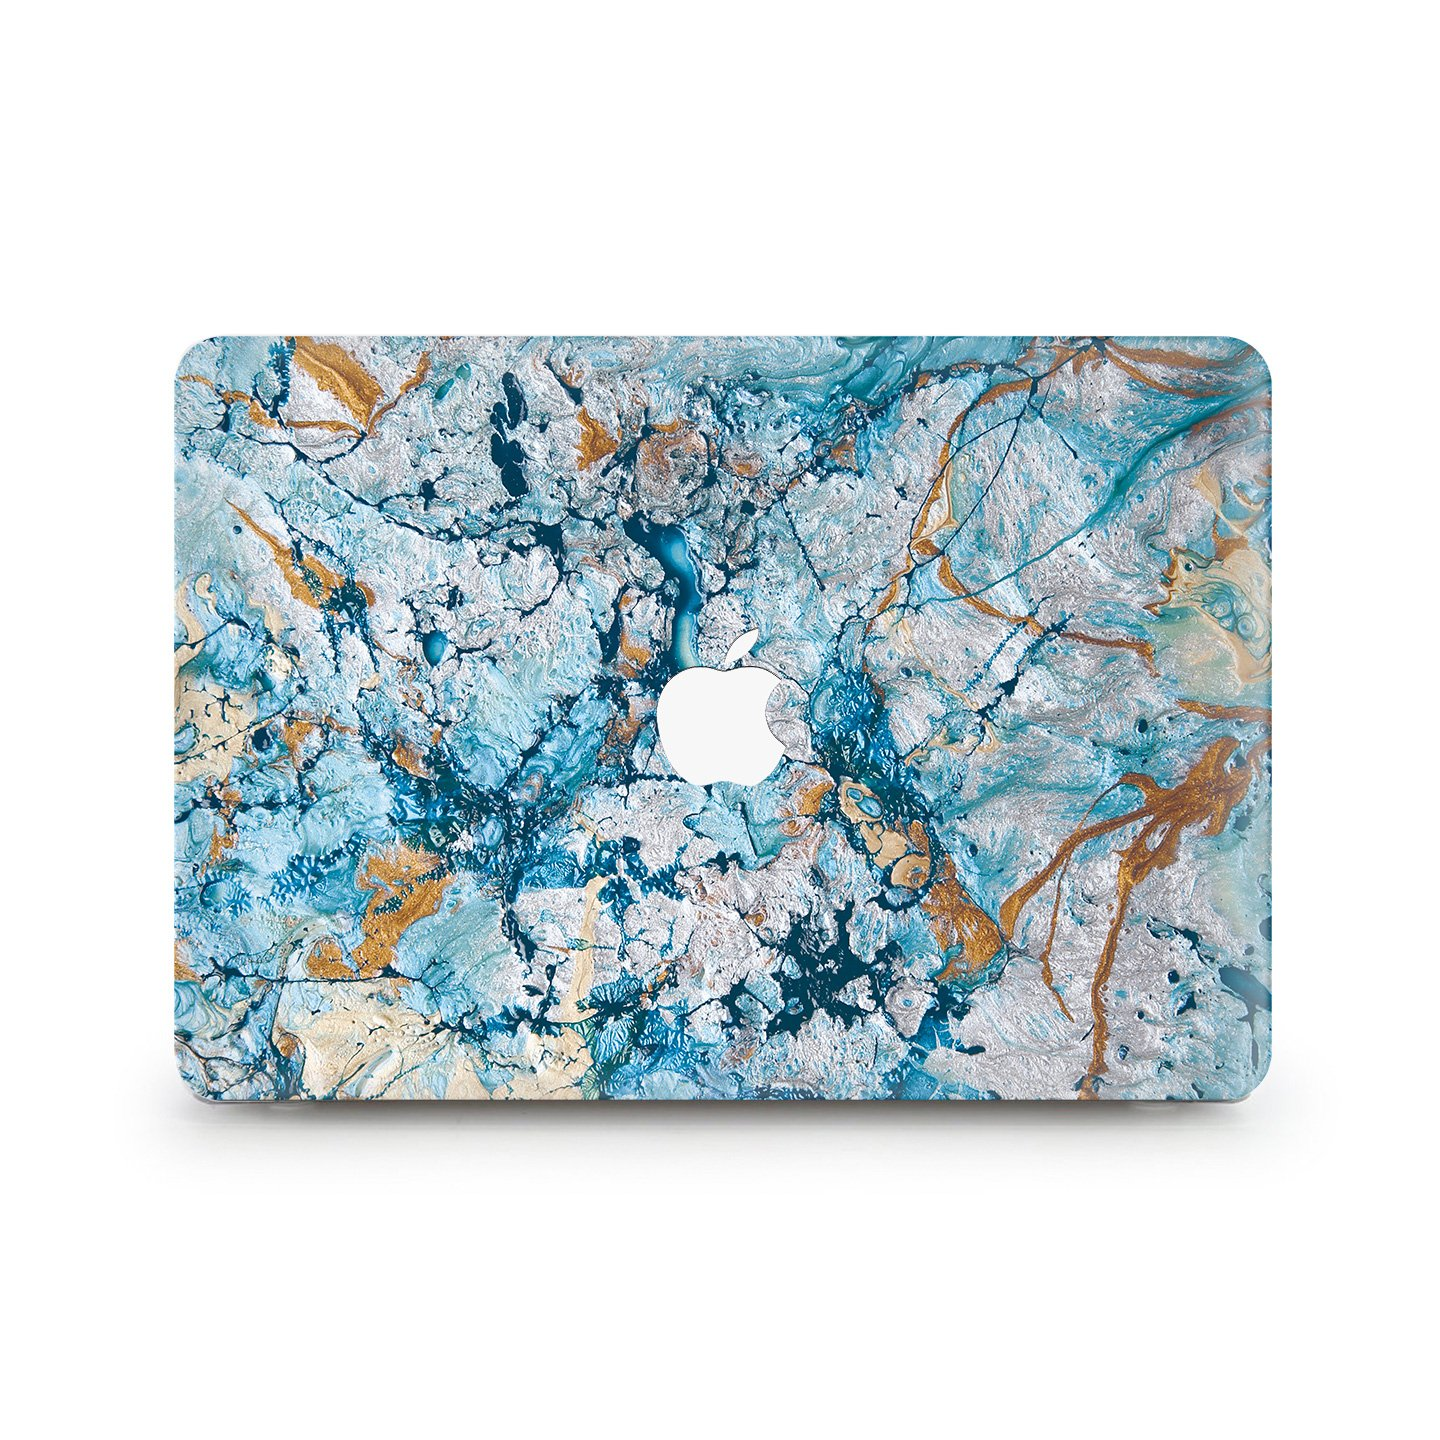 goodmoodcasesプラスチックハードケースカバーfor MacBook Pro Retina 15インチ2013 – 2015 ( a1398 ) without CD ROM ( Not Fit Macbook Pro 15 2016 ) – Cracked大理石 B06XDQFF6X